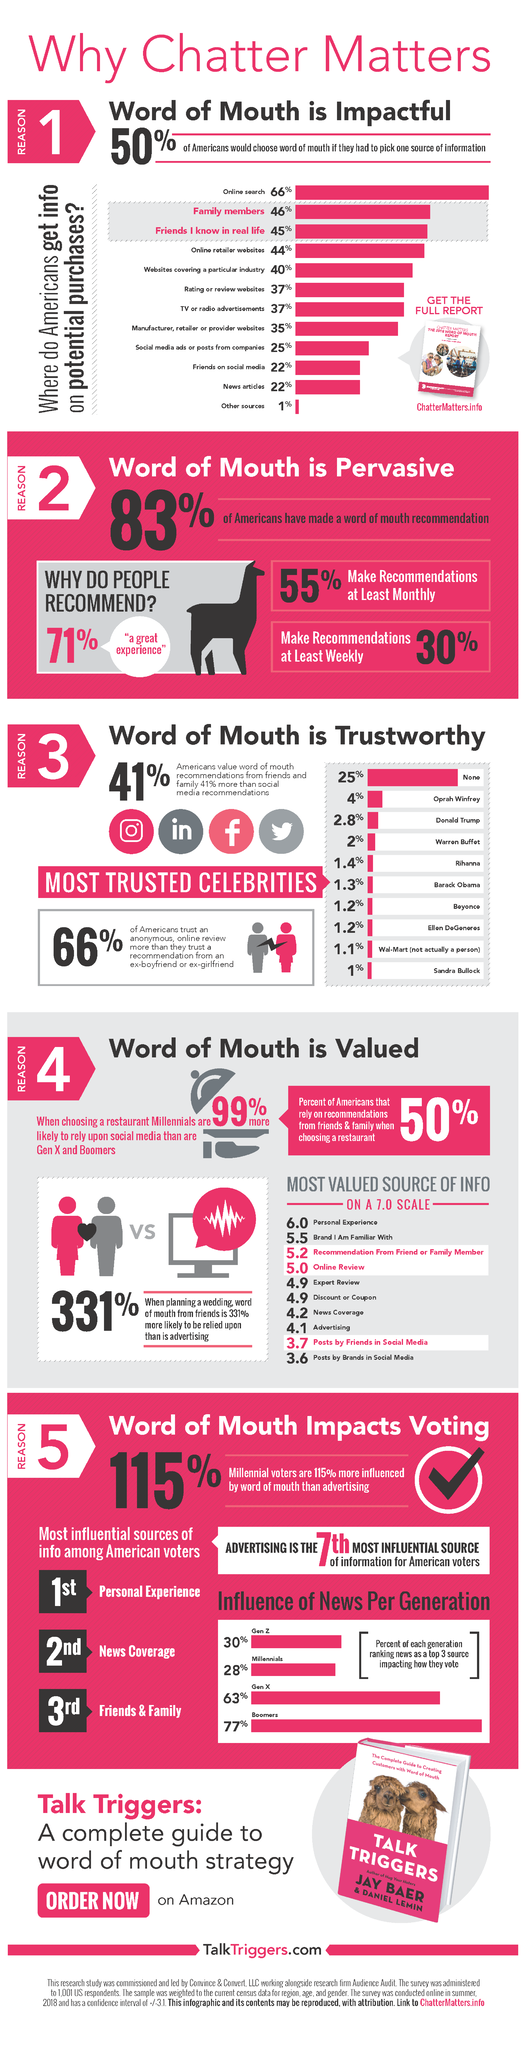 Infographic looks at the influence of word of mouth